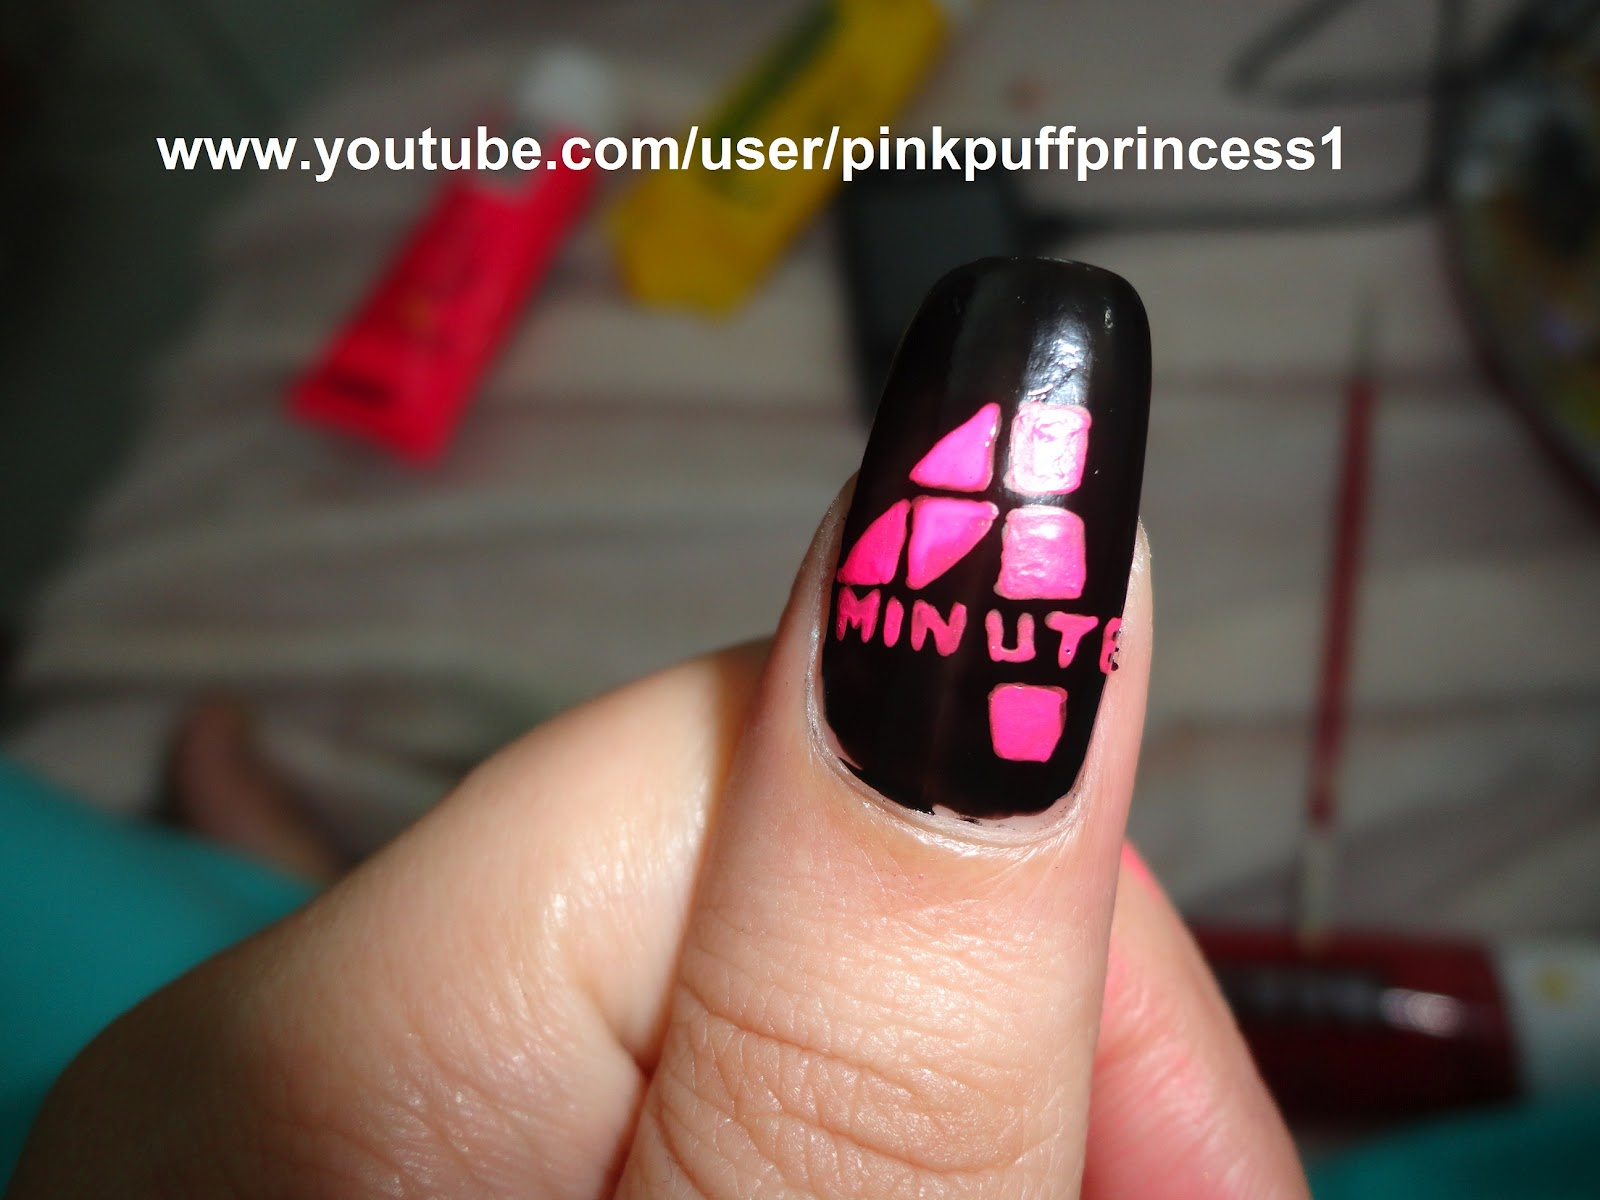 Kpop Nail Art 4Minute Logo Inspired By Pinkpuff Prince